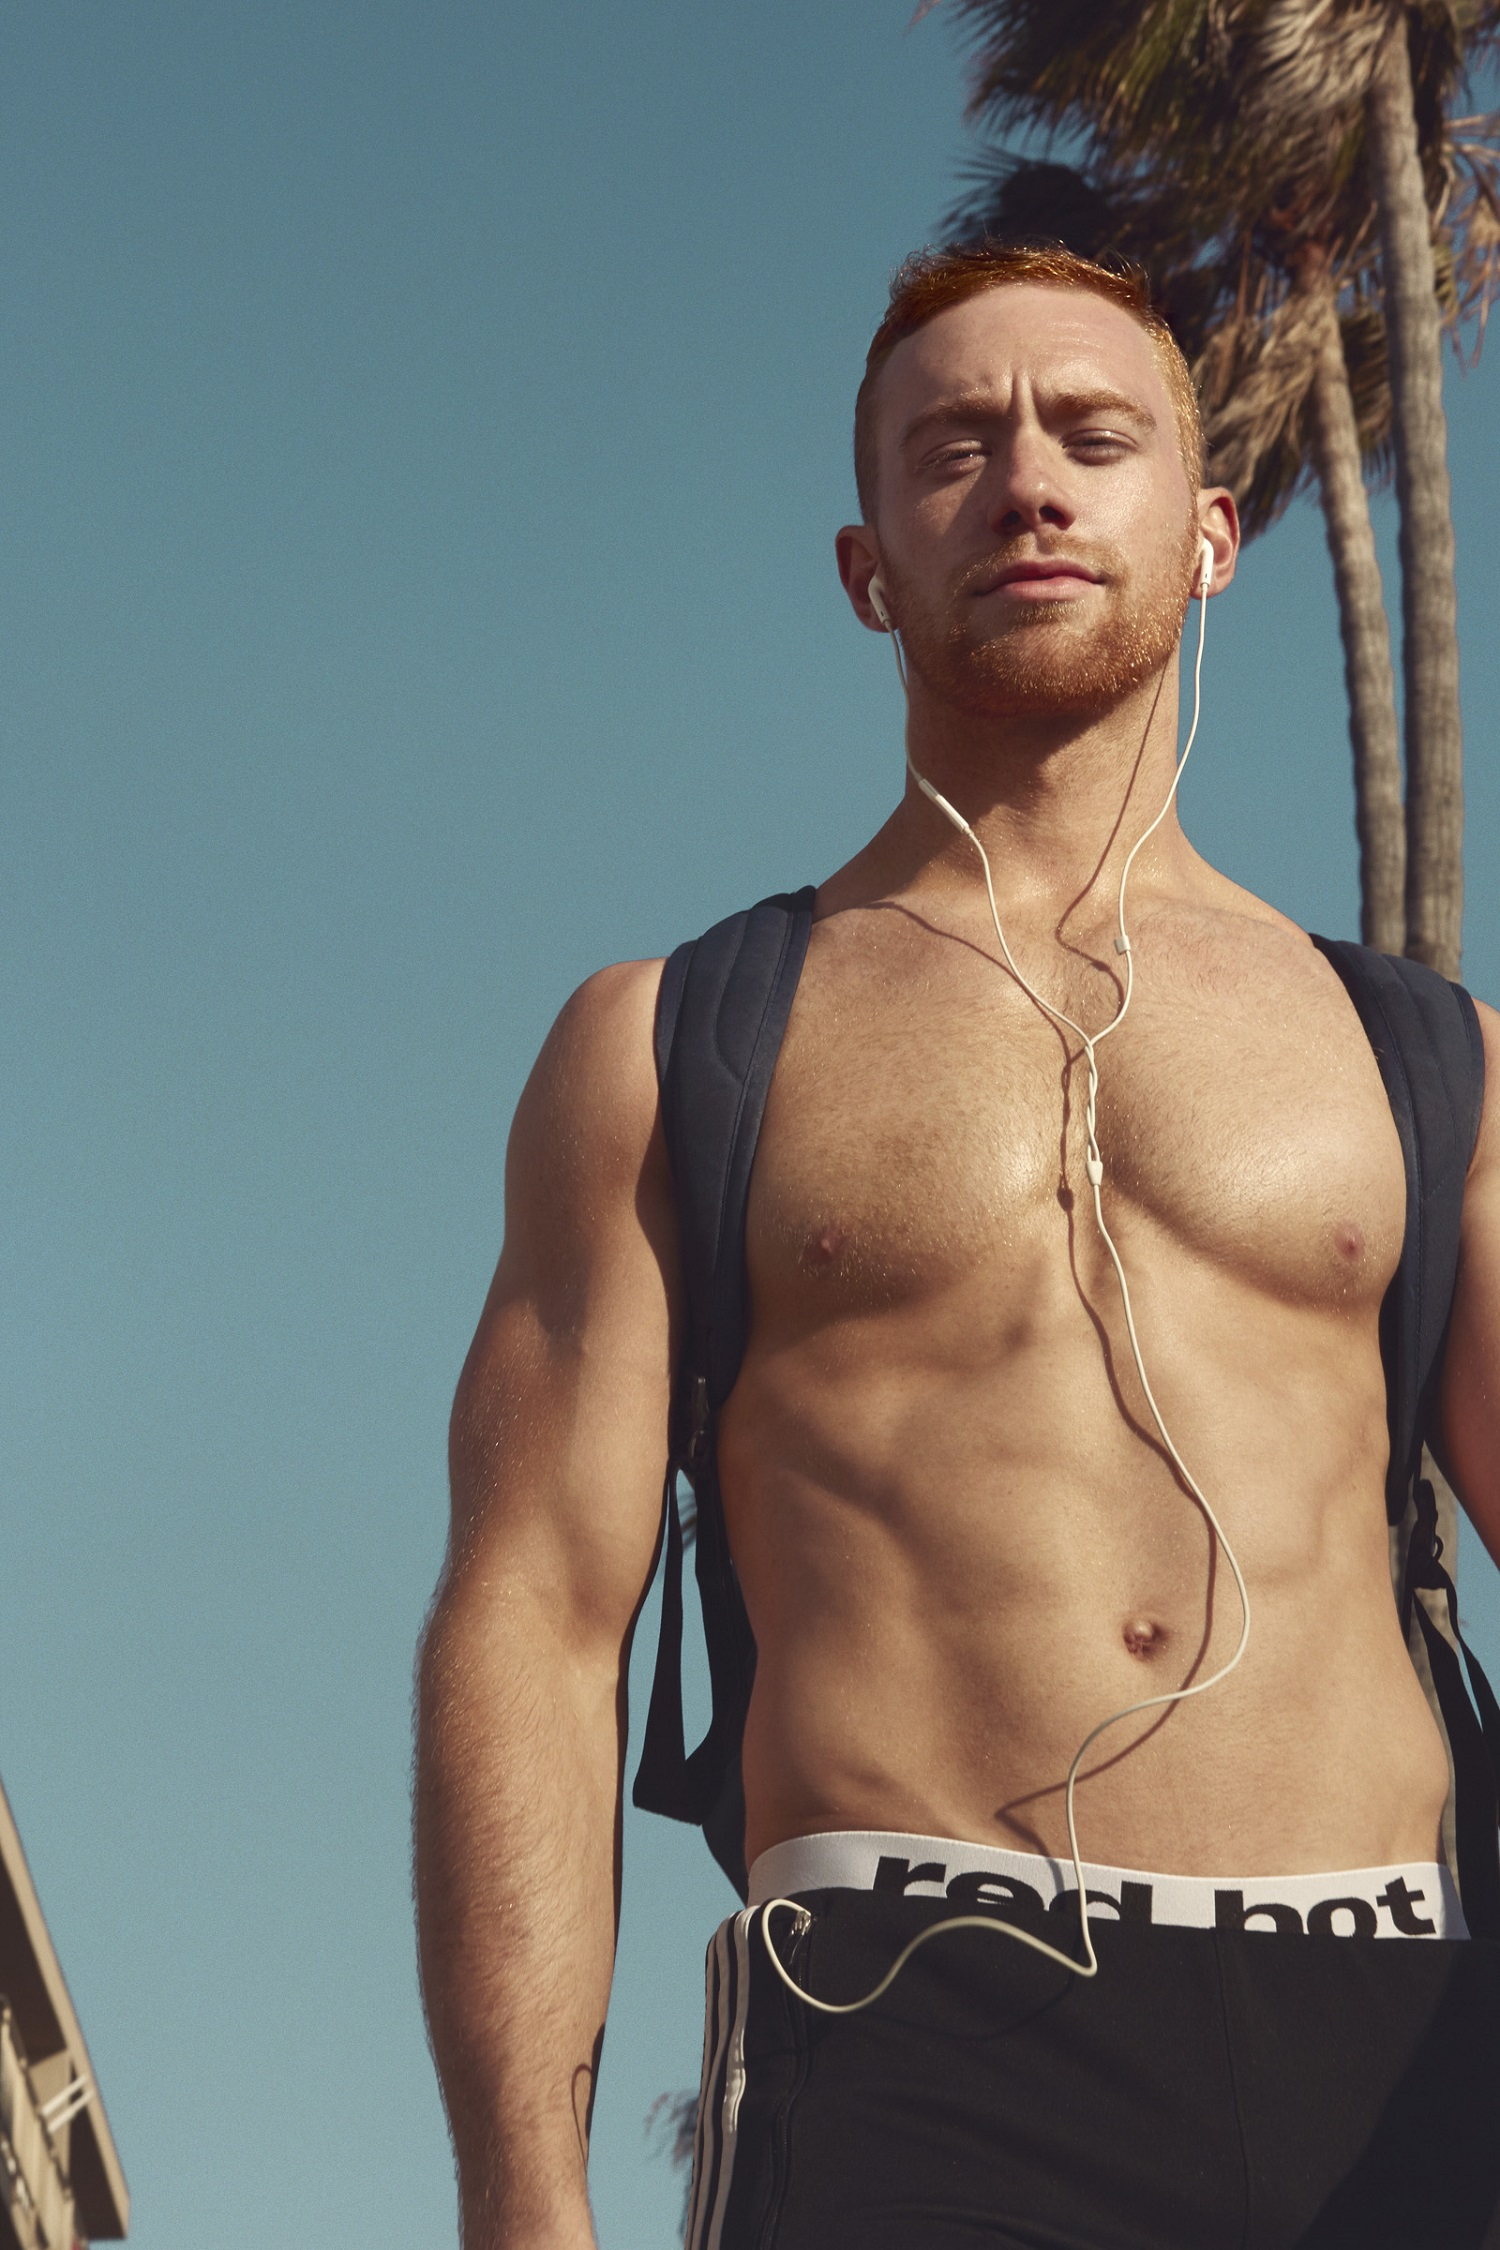 Meet The 12 Ginger Hunks In New Red Hot American Calendar Throughout Men On A Mission Calendar